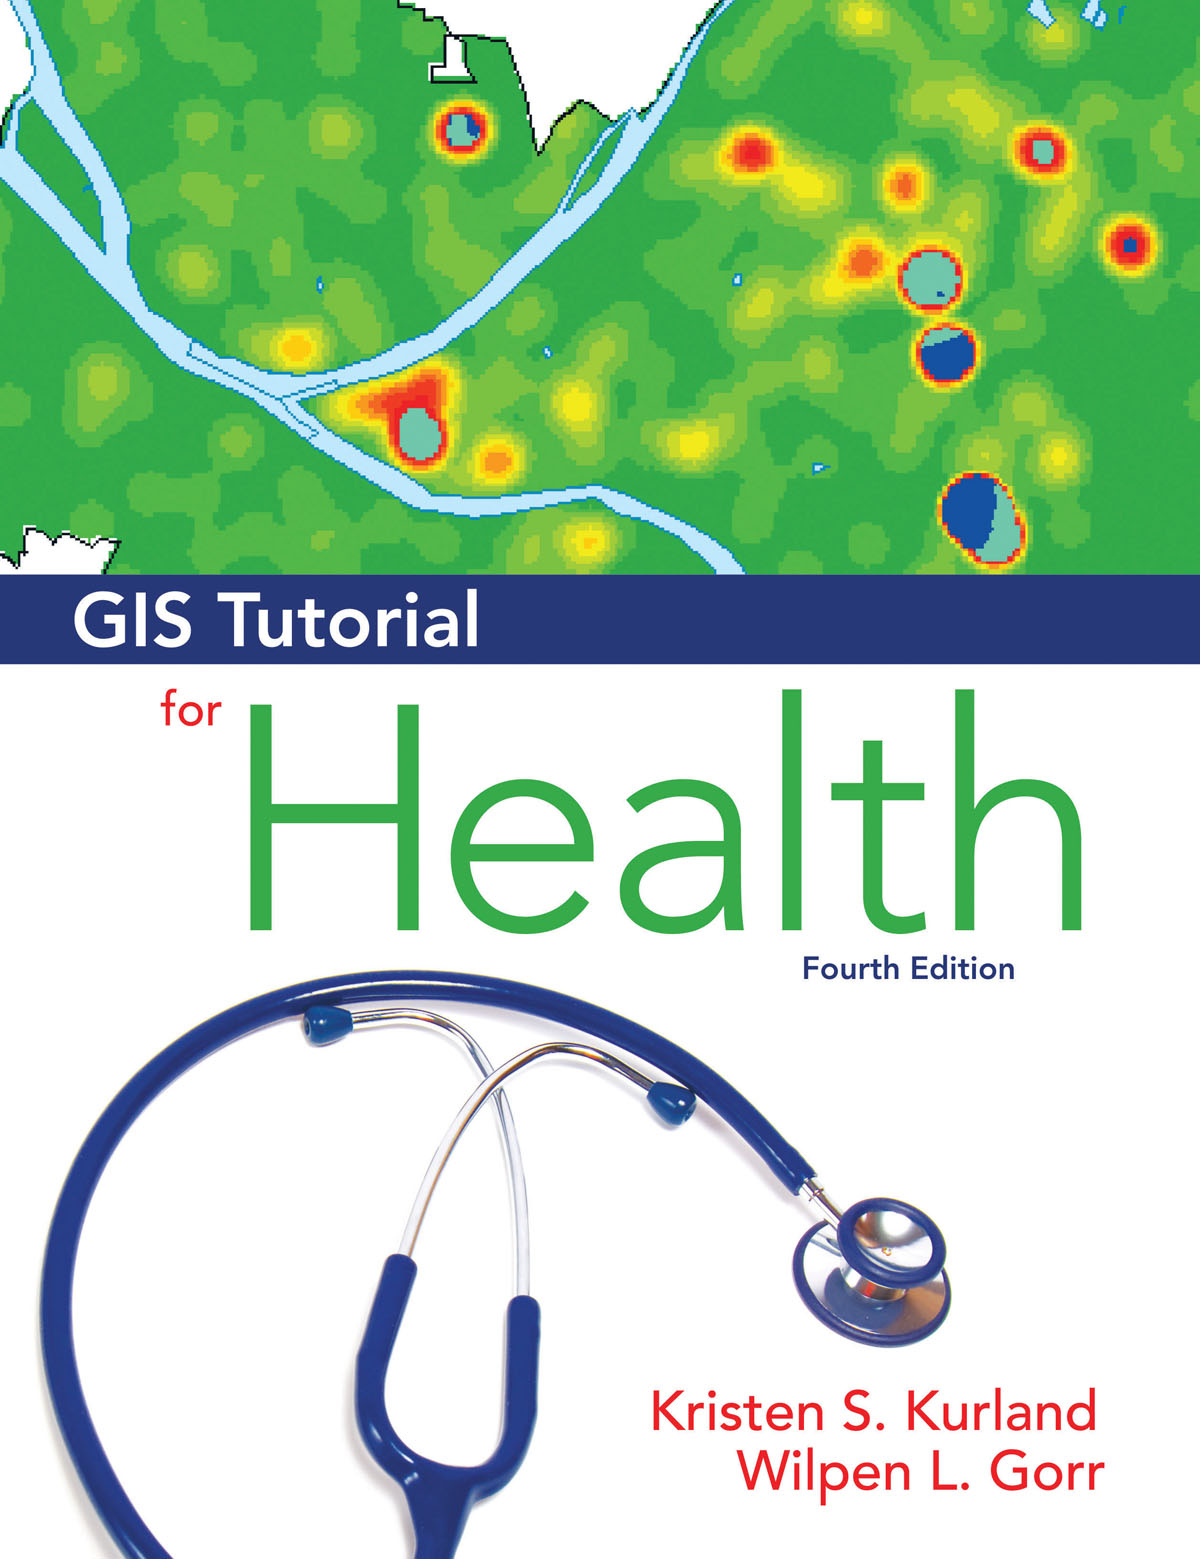 This tutorial teaches students and public health professionals how to use GIS to analyze and manage data.